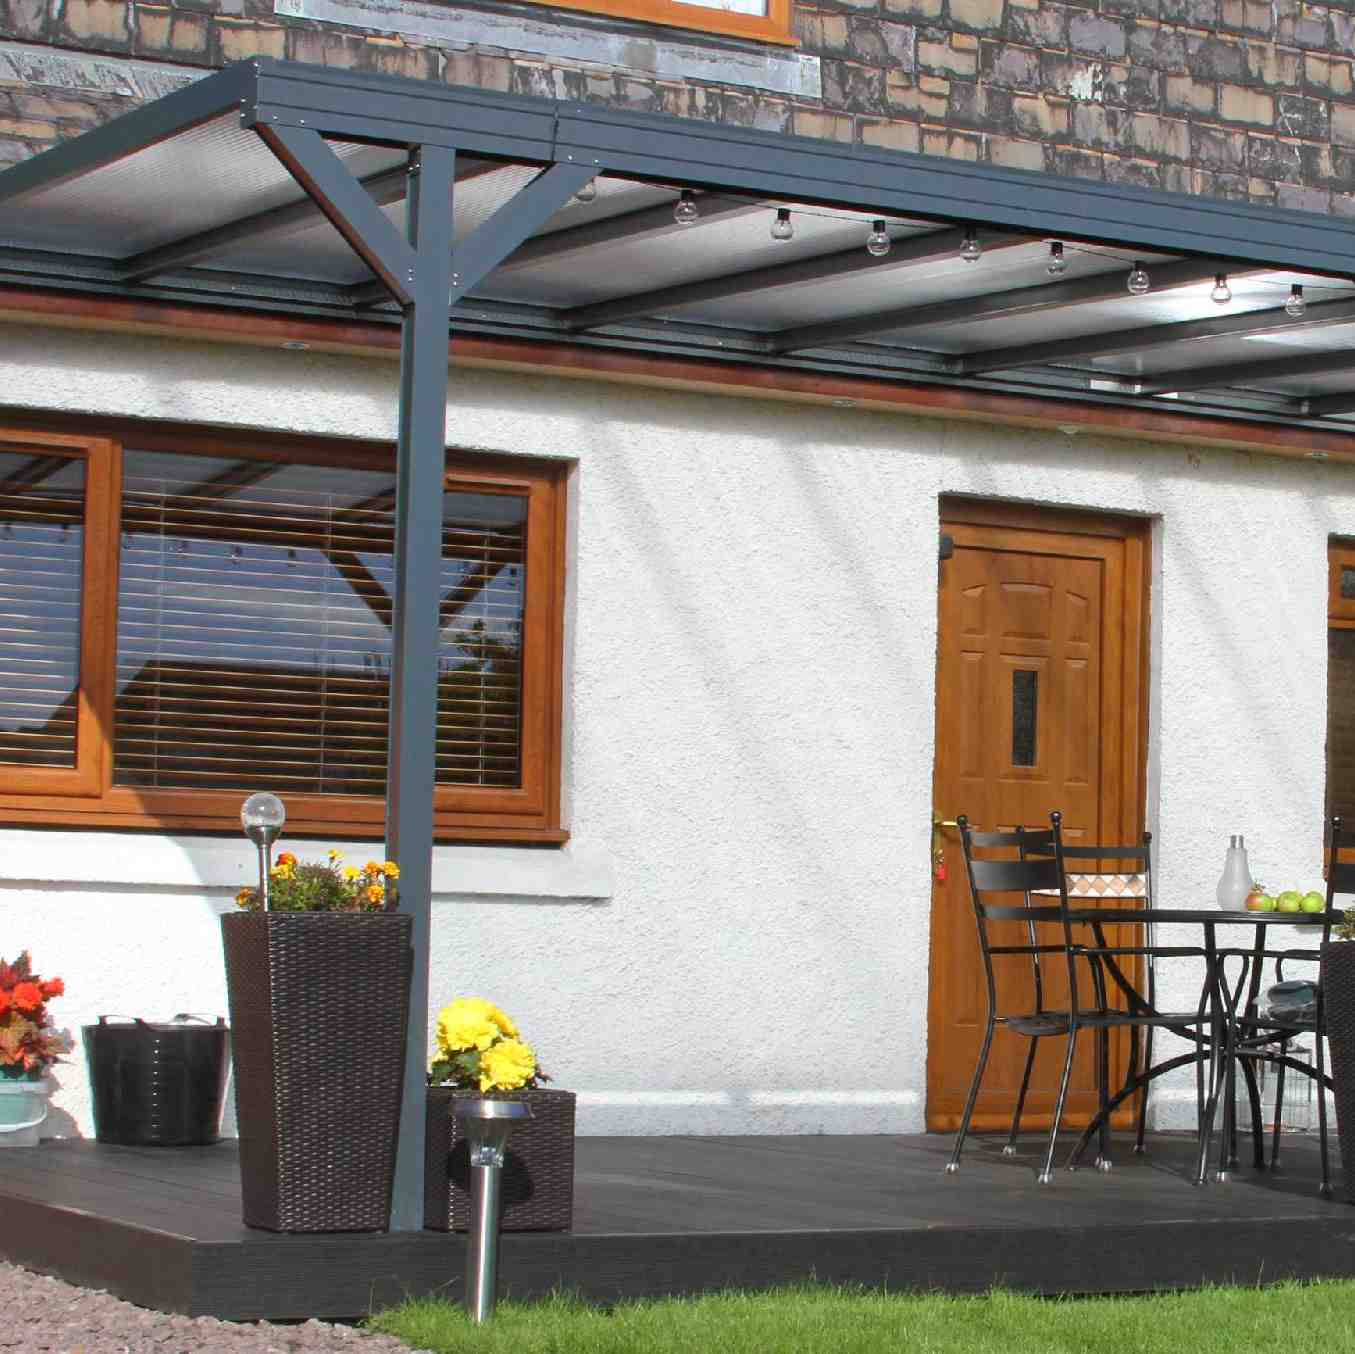 Omega Verandah, Anthracite Grey, 16mm Polycarbonate Glazing - 3.1m (W) x 4.5m (P), (2) Supporting Posts